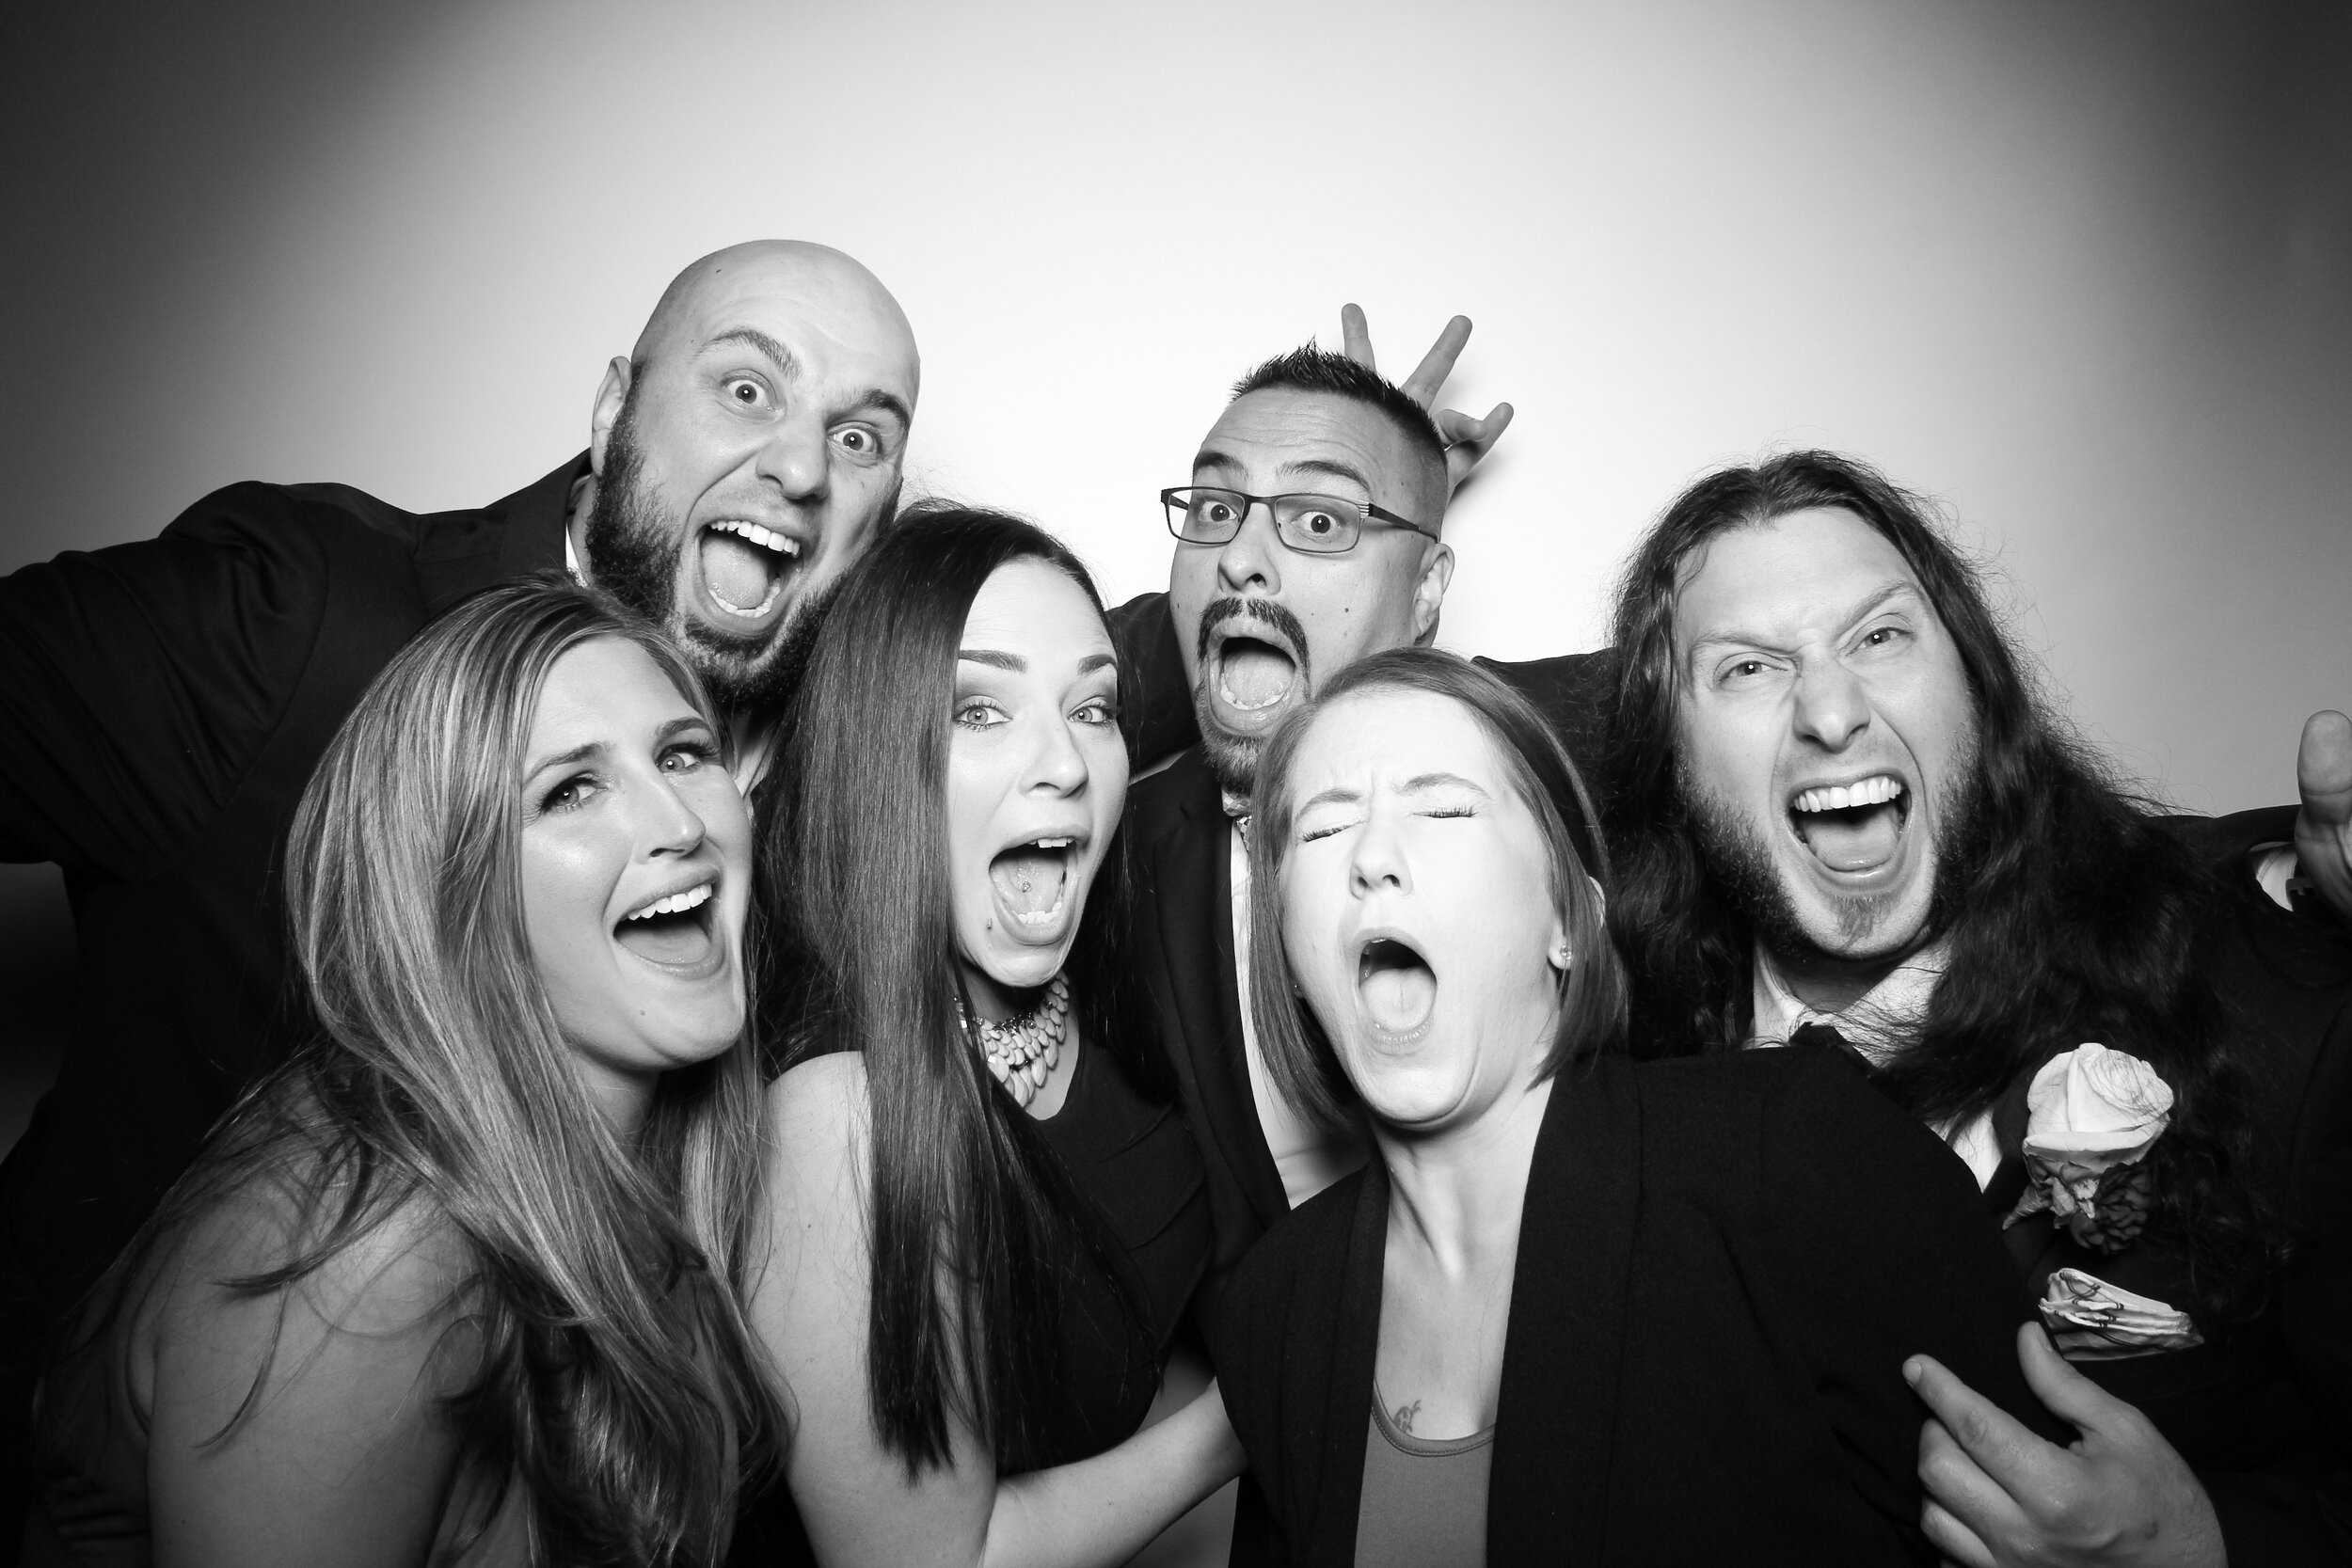 Mir_Mir_Kardashian_Style_Black_and_White_Photo_Booth_Chicago_05.jpg